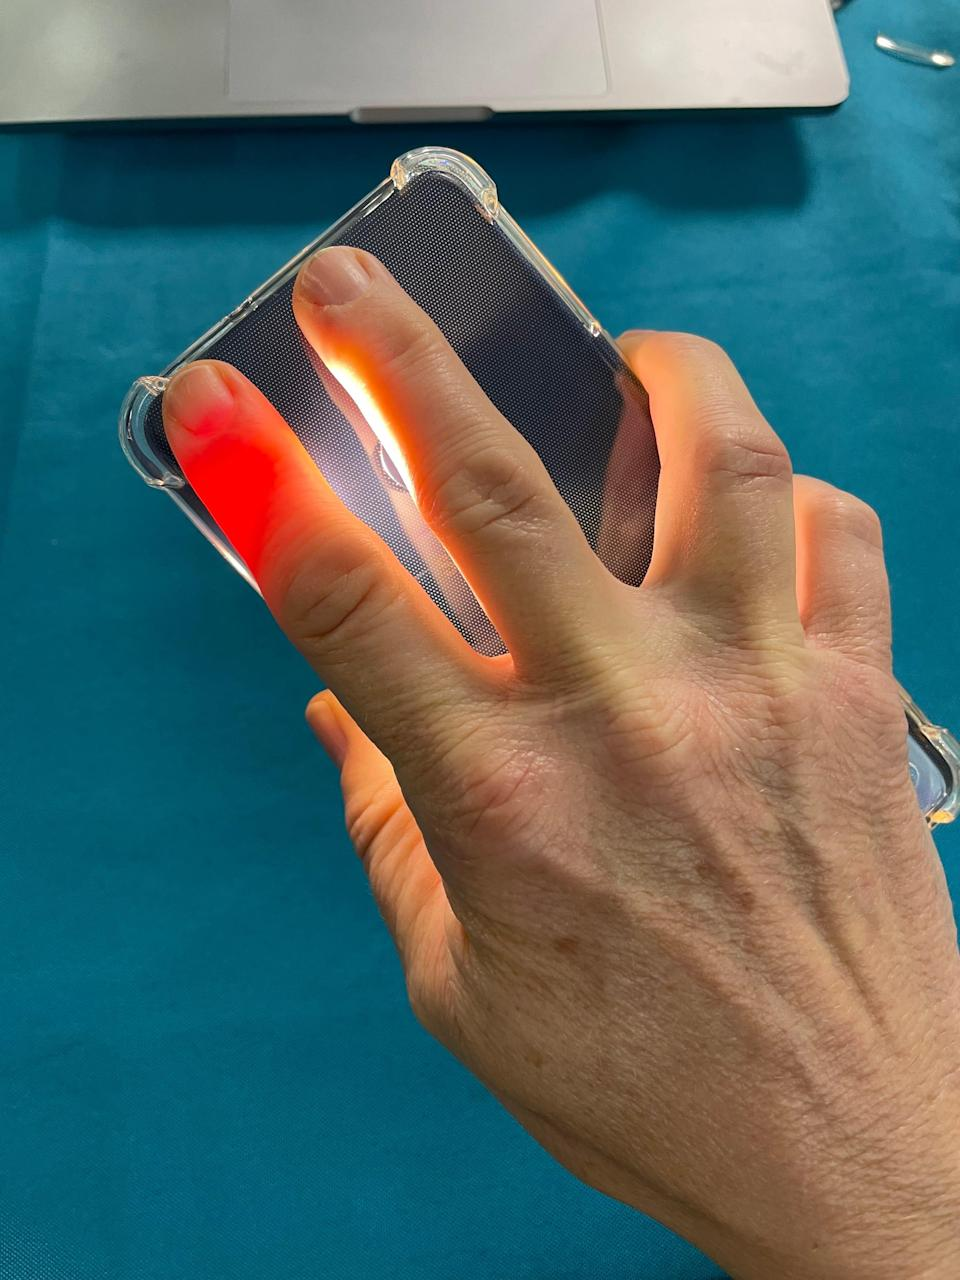 Jennifer Jolly takes her blood pressure with a smartphone camera using the OptiBP app. The app, which is released on Android in beta form now, uses algorithms to figure out pulse and blood pressure.